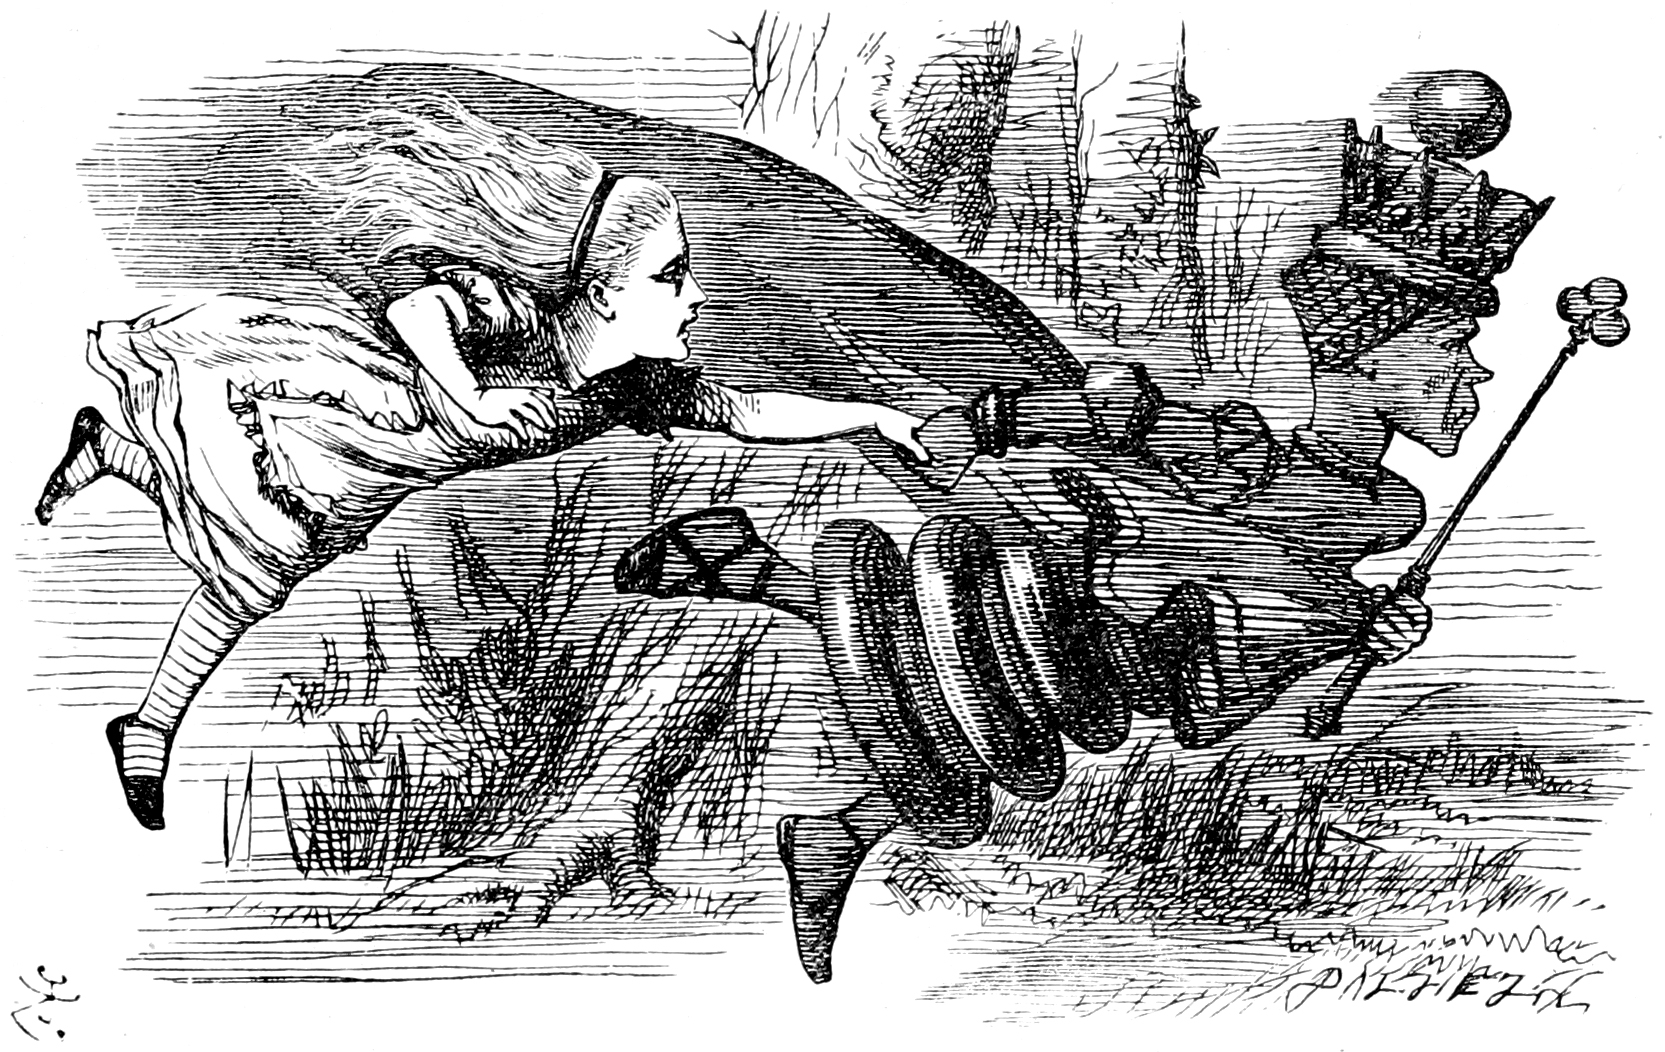 A 19th century illustration of the Red Queen pulling the character Alice by the arm.